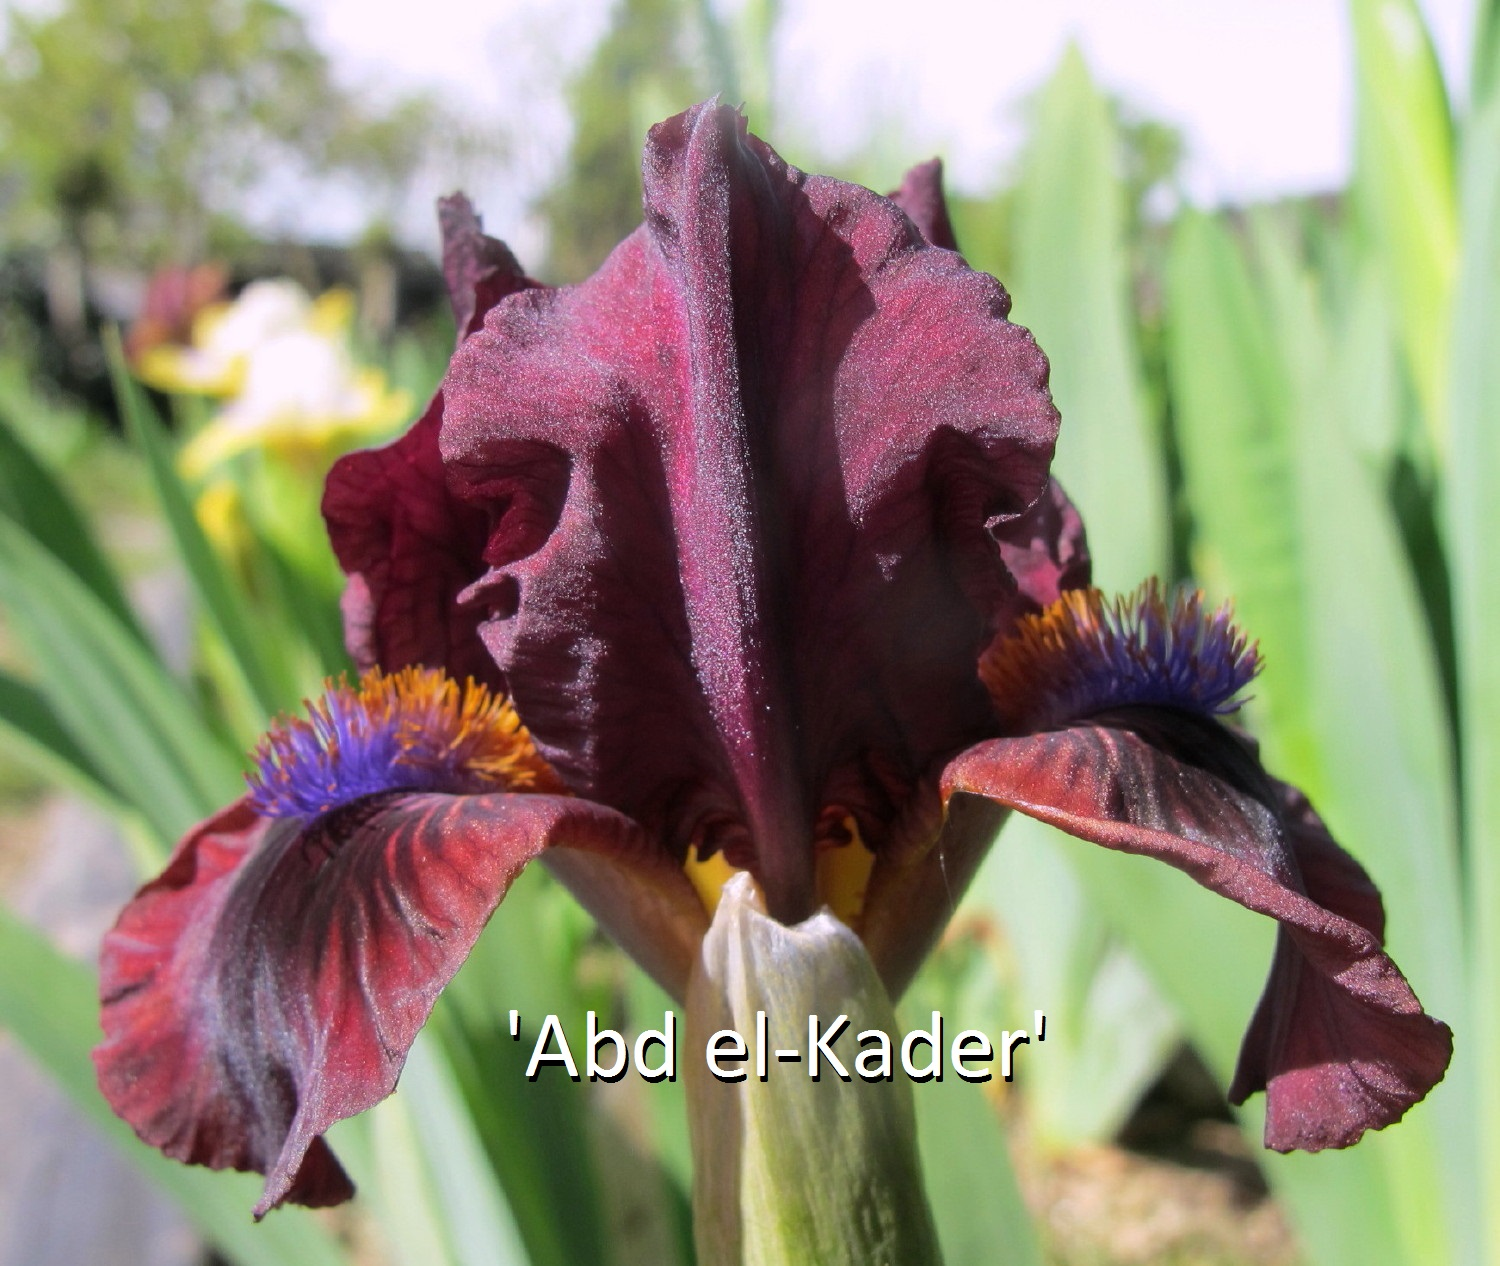 Abd El Kader Loc Tasquier R 2016 Seedling C130A SDB 30 Cm Early Midseason Bloom Standards Plum Burgundy Black Overlay Style Arms